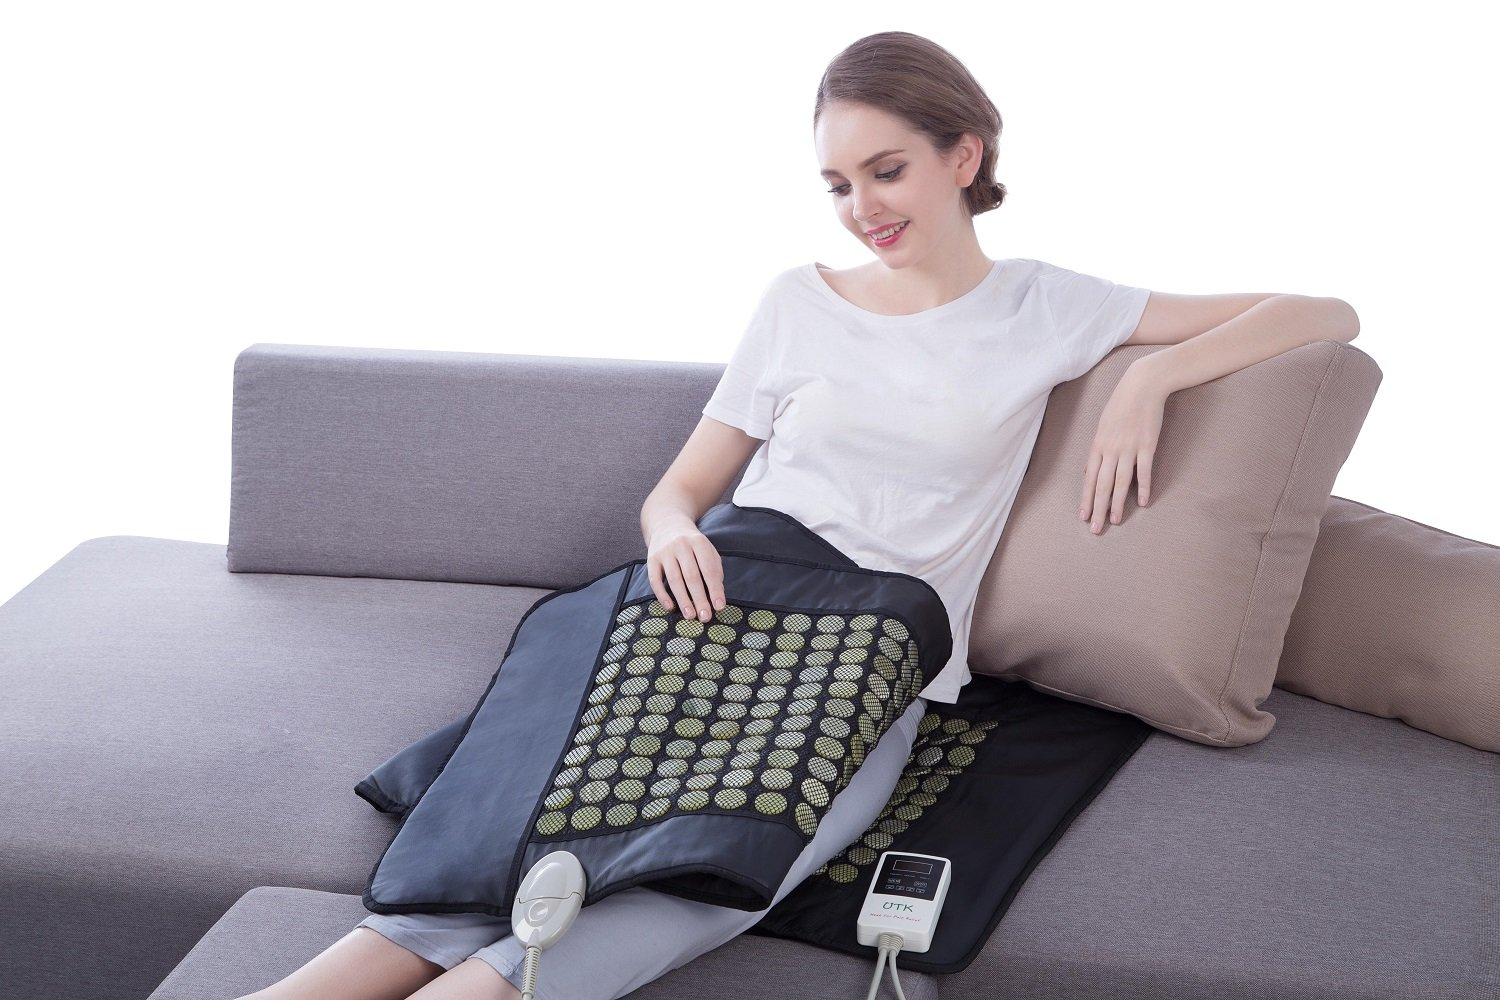 UTK Far Infrared Natural Jade Heating Pad for pain relief, Large Full Body Size(24''x 70'') by UTK (Image #3)